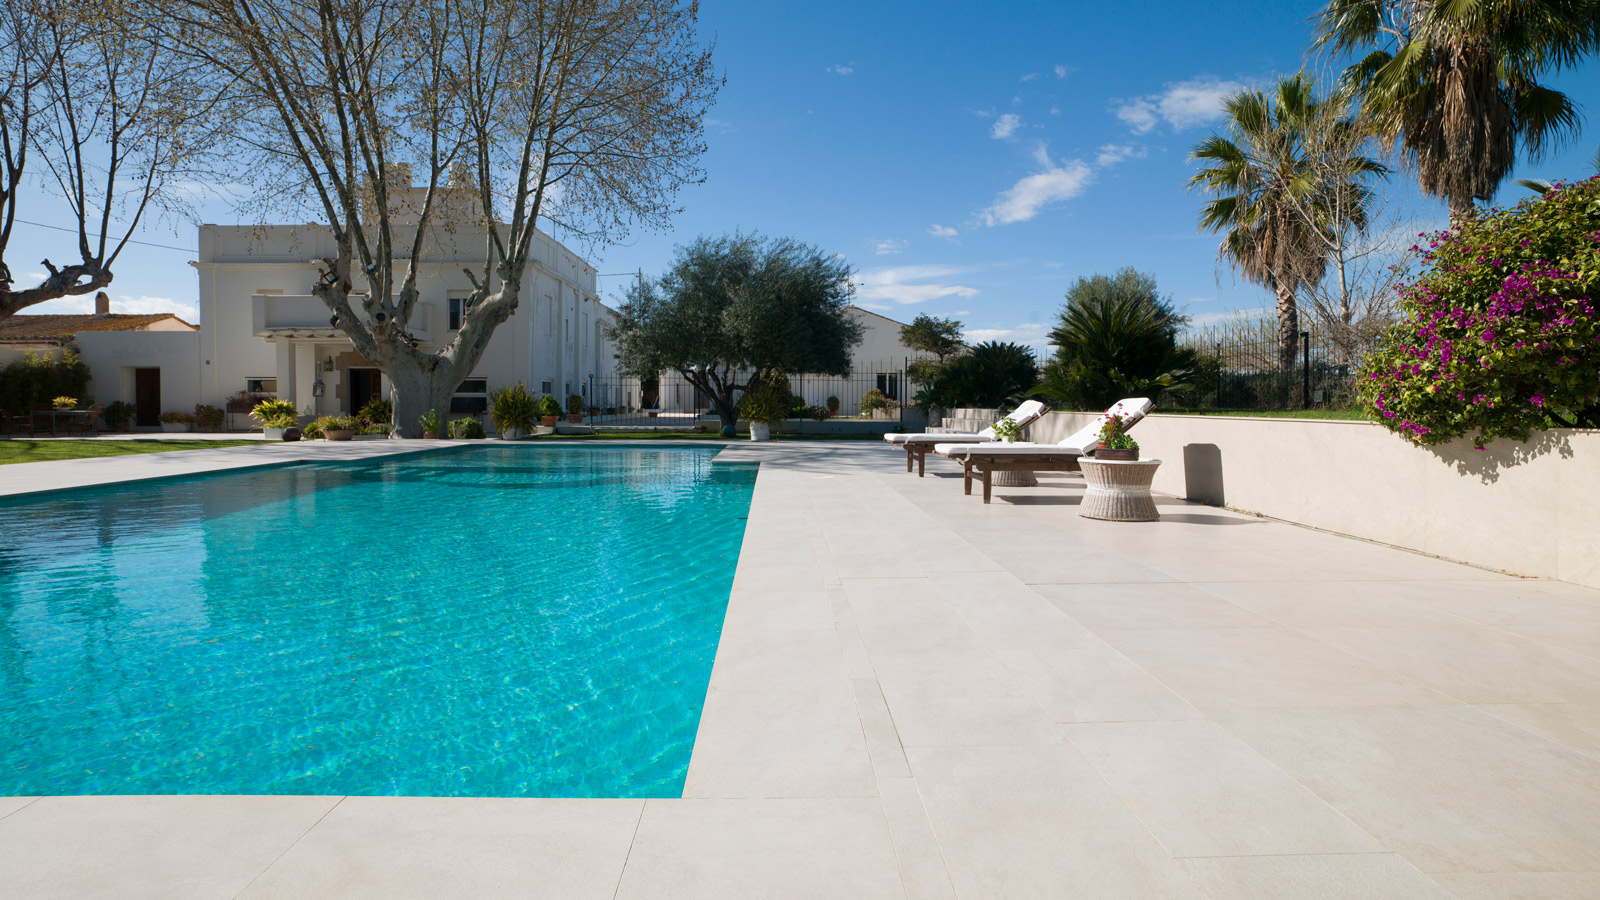 PORCELANOSA Group Projects: El Coso, a garden opposite the Mediterranean